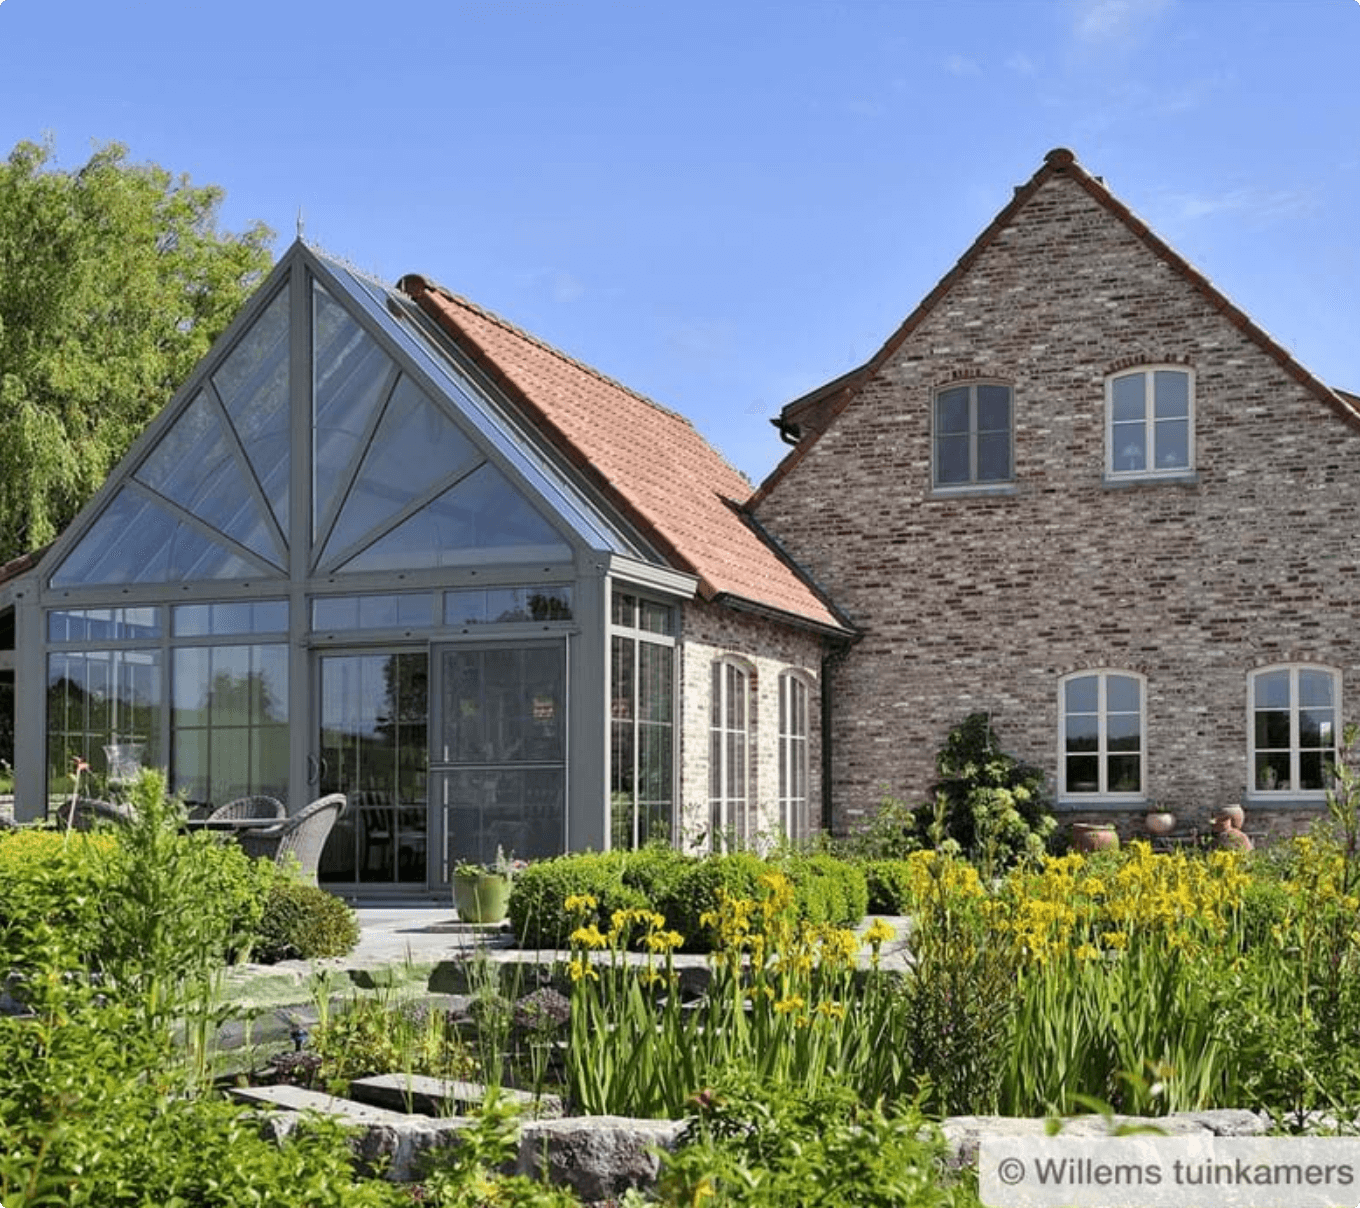 Why Build an Orangery Conservatory?